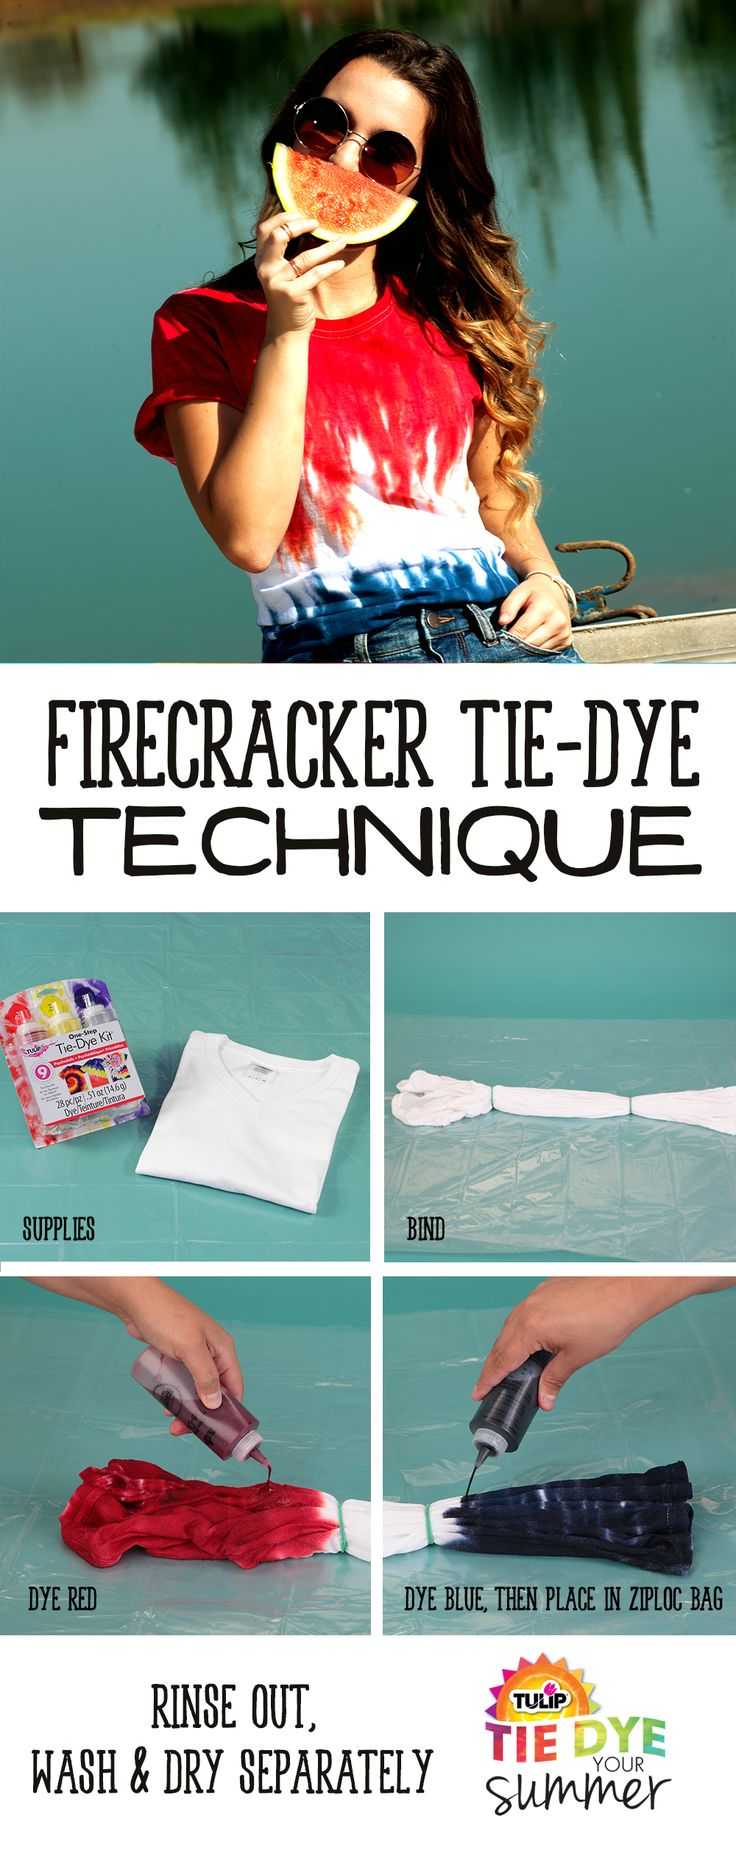 327 best images about 4th of july diy on pinterest for Bleach dye shirt instructions